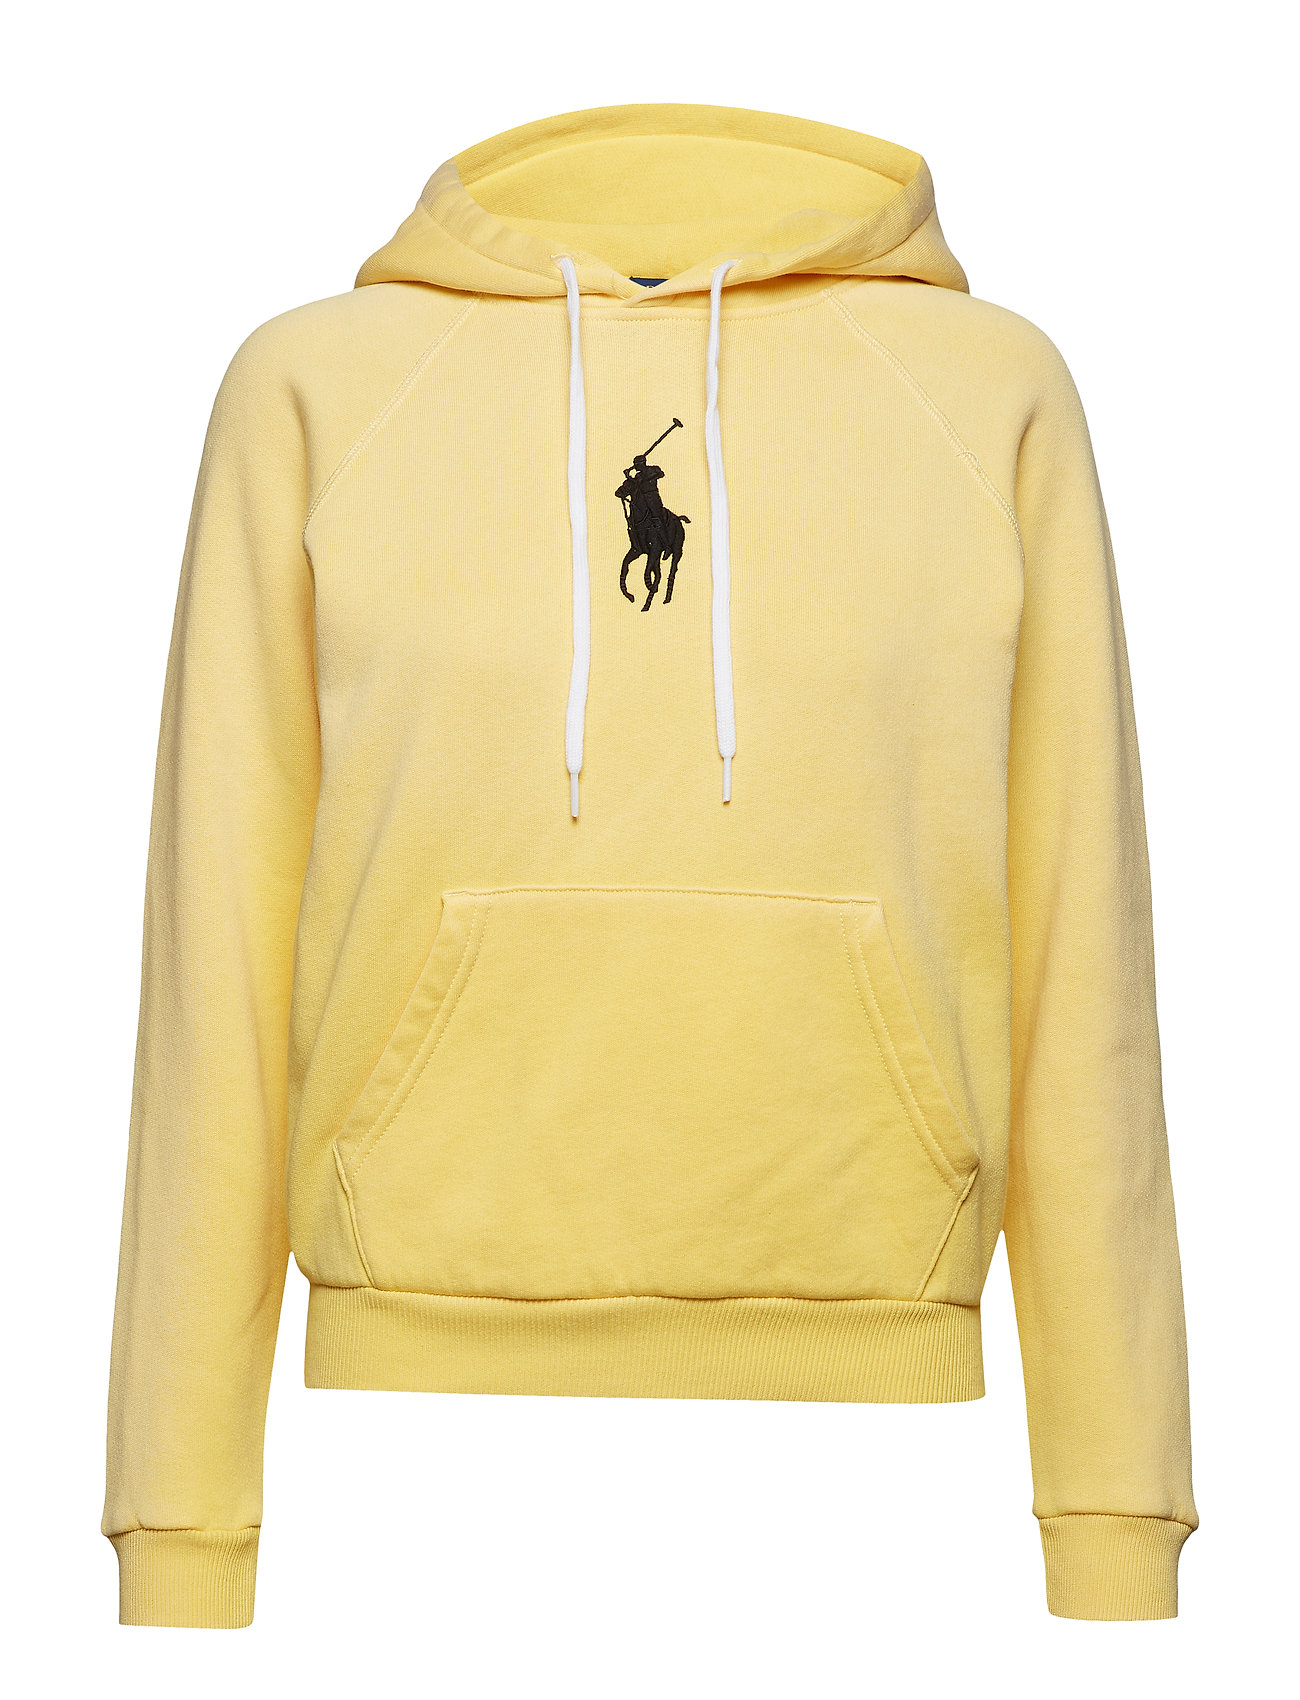 Polo Ralph Lauren Big Pony Fleece Hoodie